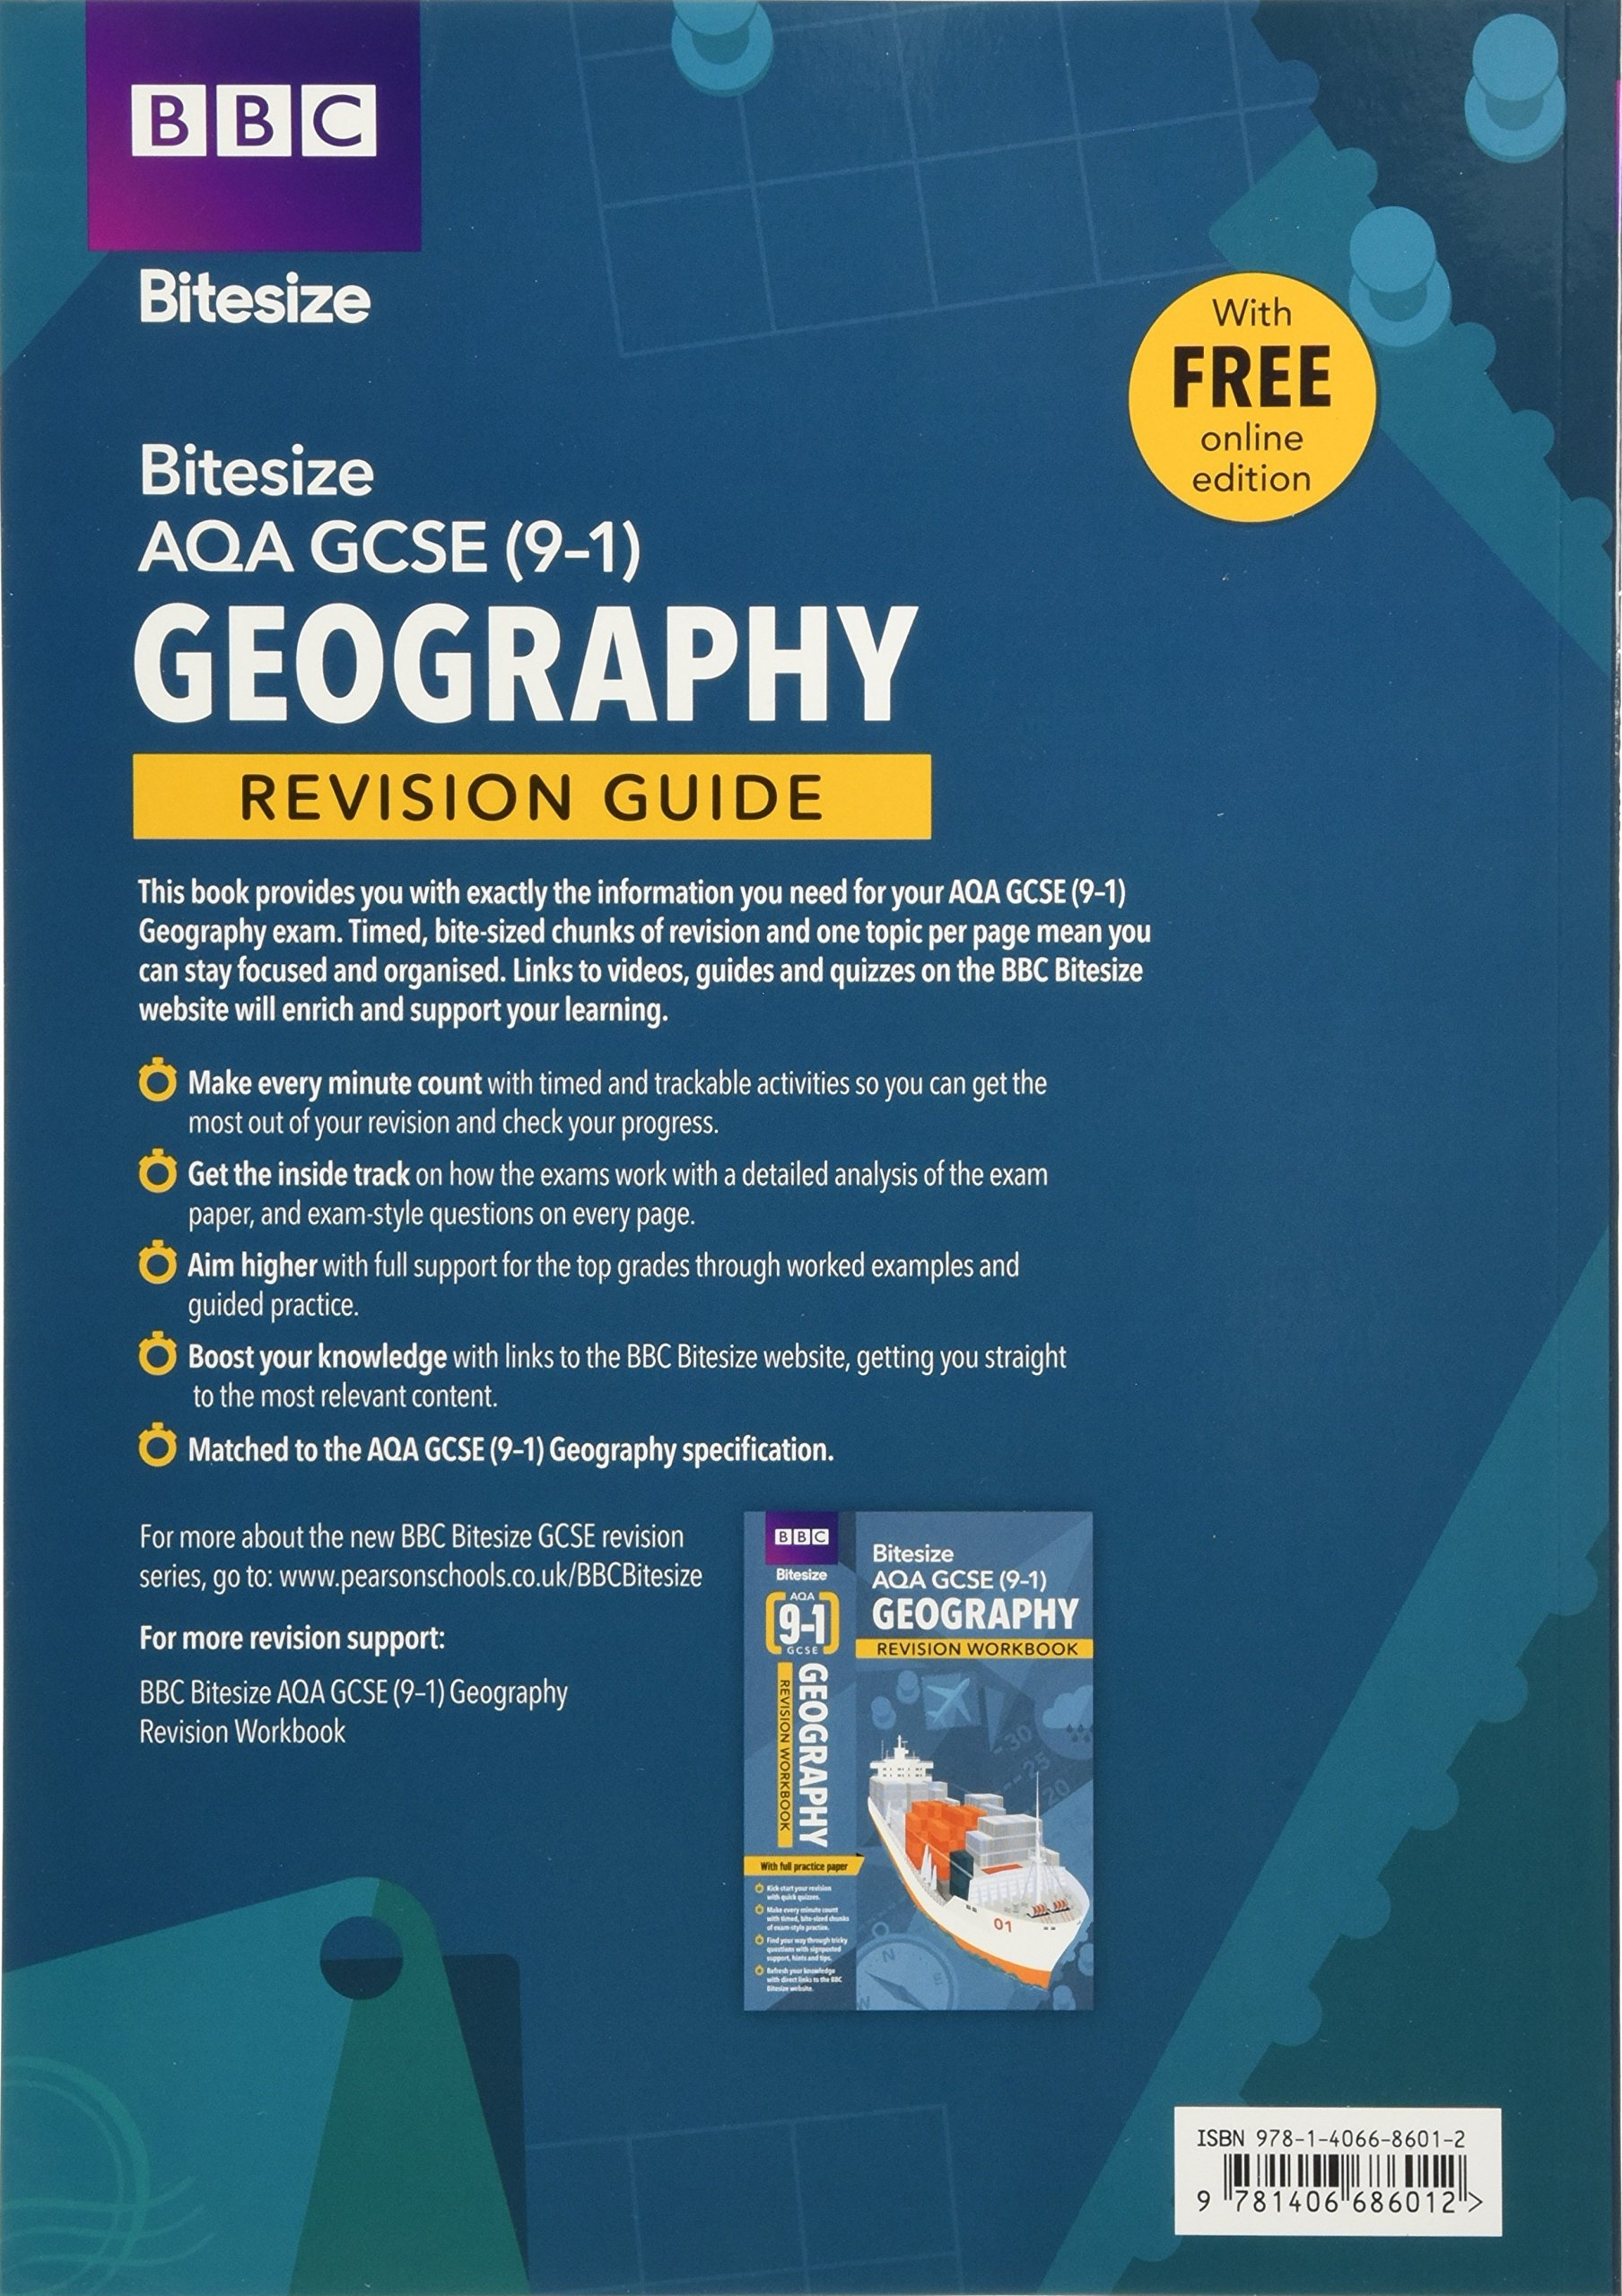 Bbc Bitesize Aqa Gcse 9 1 Geography Revision Guide Two Way Switch 2017 9781406686012 Books